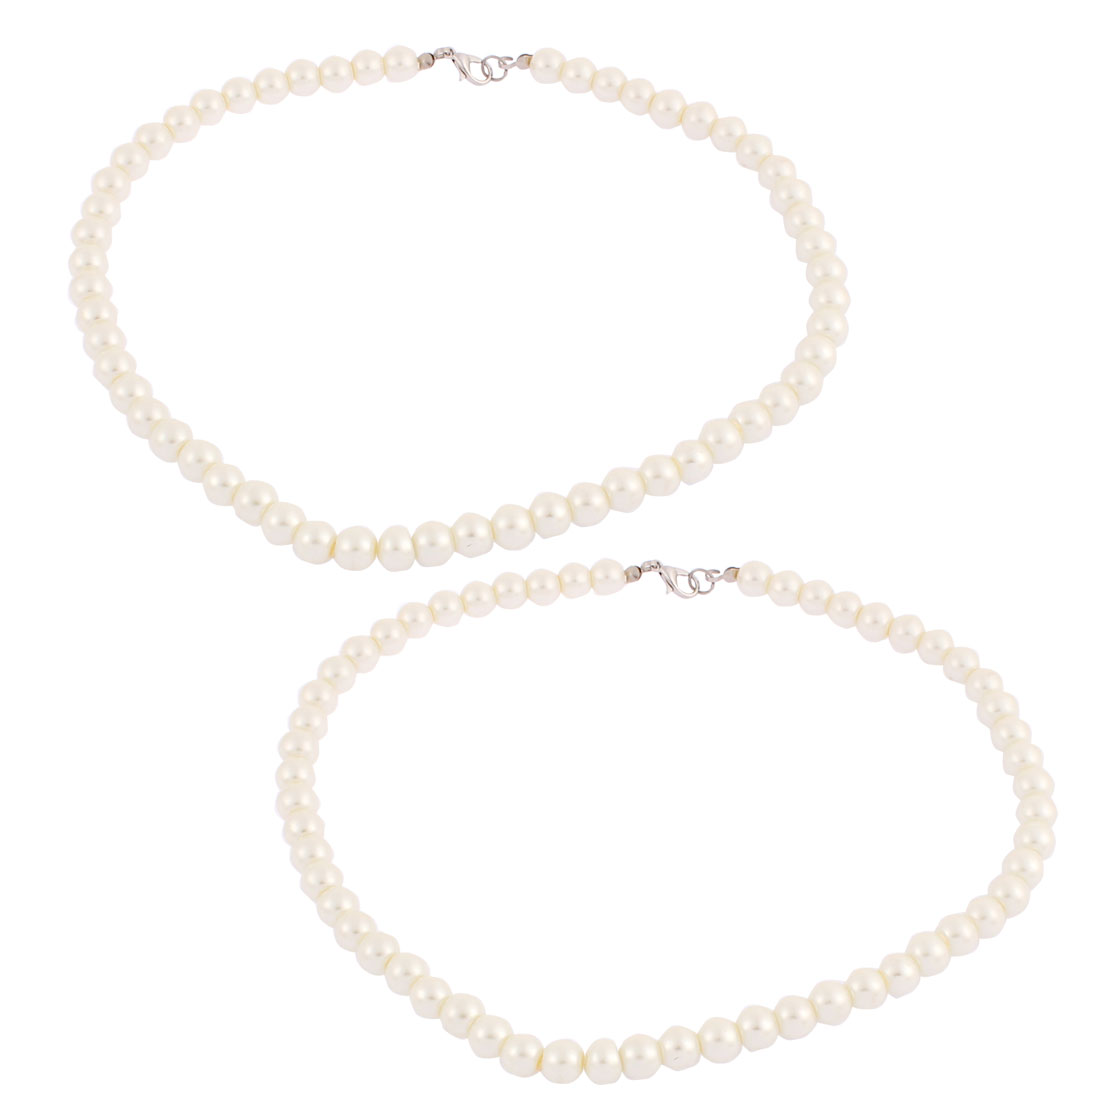 Woman Imitation Round Pearl Beaded Linked Necklace Chain Neck Decor 45cm Length 2pcs